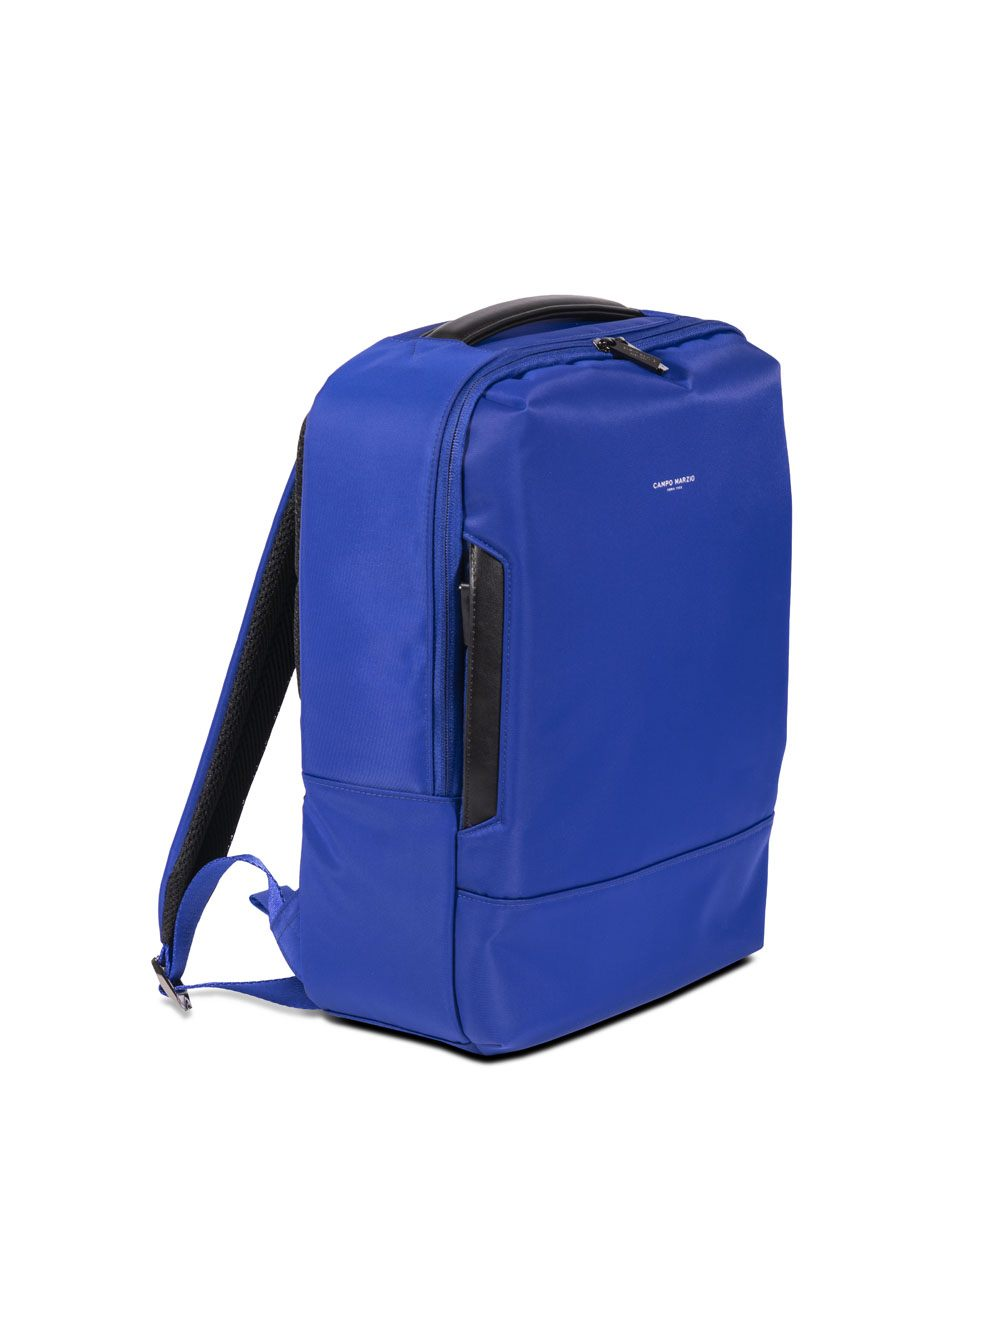 "Medium Backpack 13"" - Blueberry"